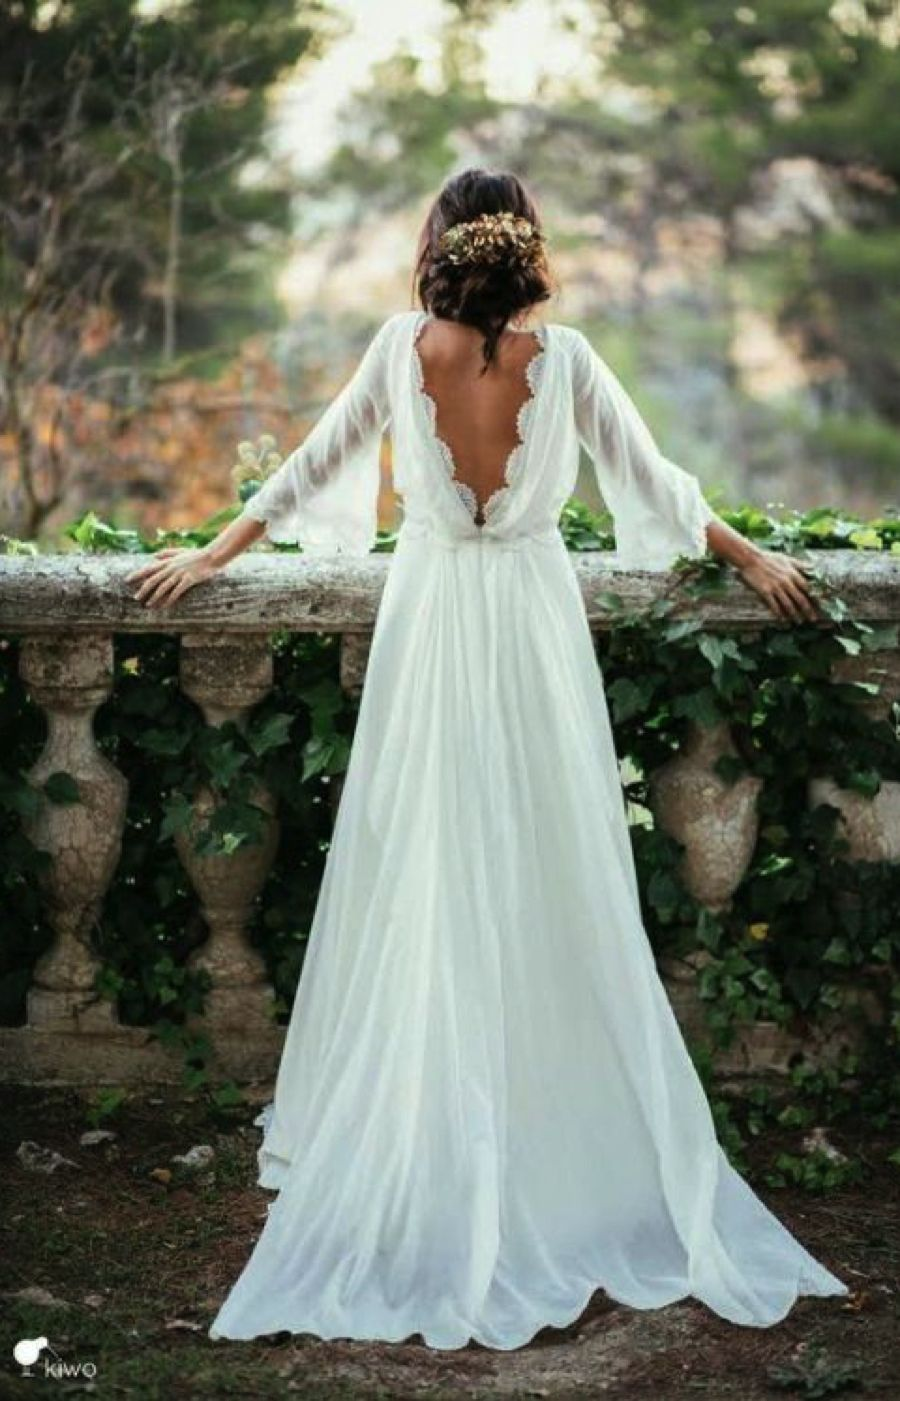 Bridal Wedding Dresses Online Shopping | Wedding dress, Weddings and ...